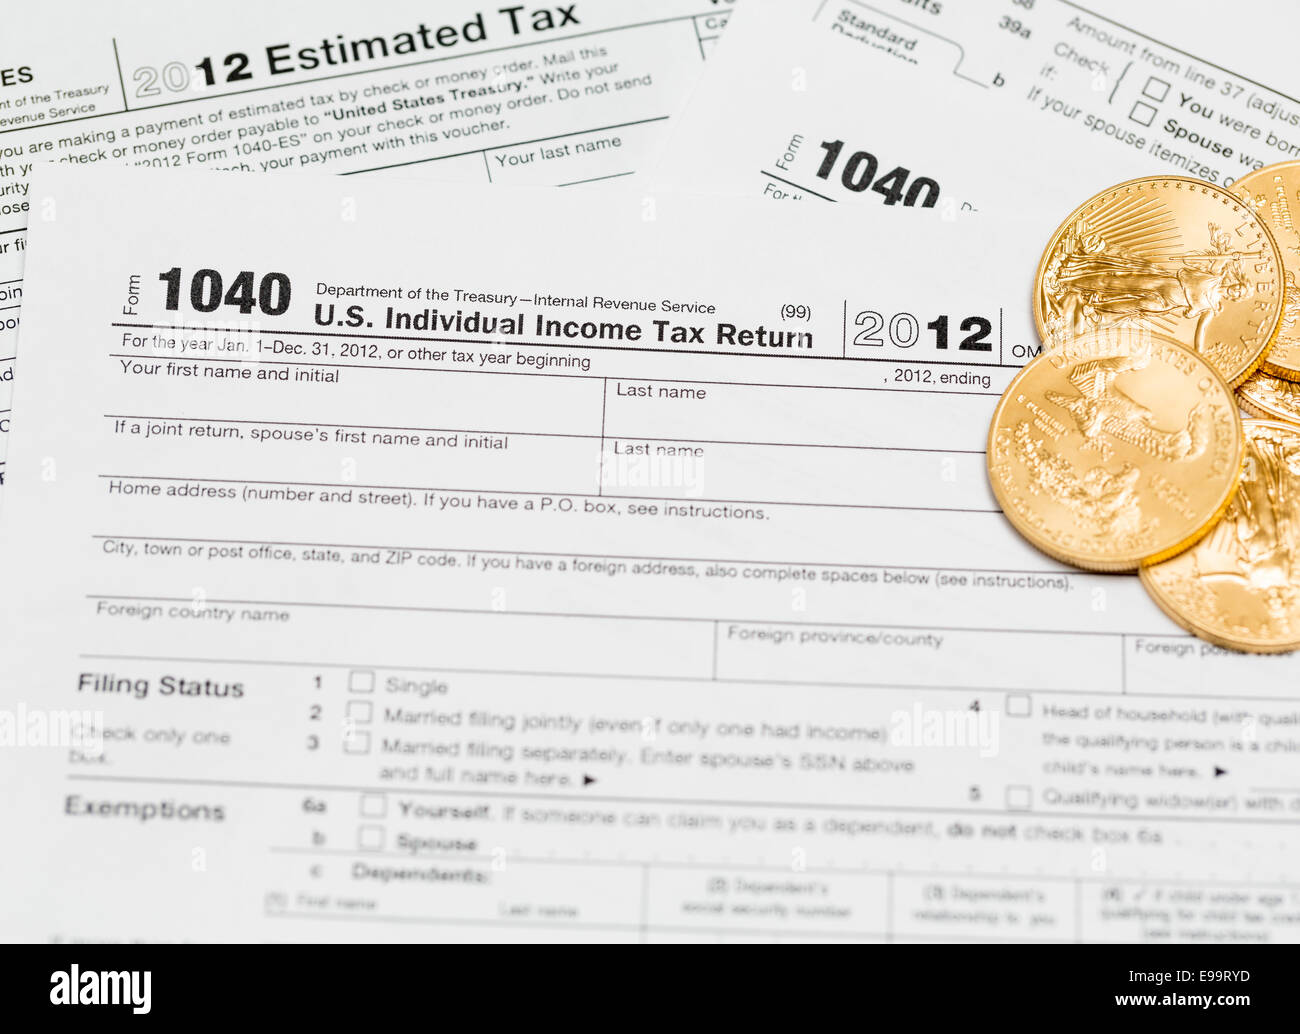 Usa tax form 1040 for year 2012 stock photo royalty free image usa tax form 1040 for year 2012 falaconquin